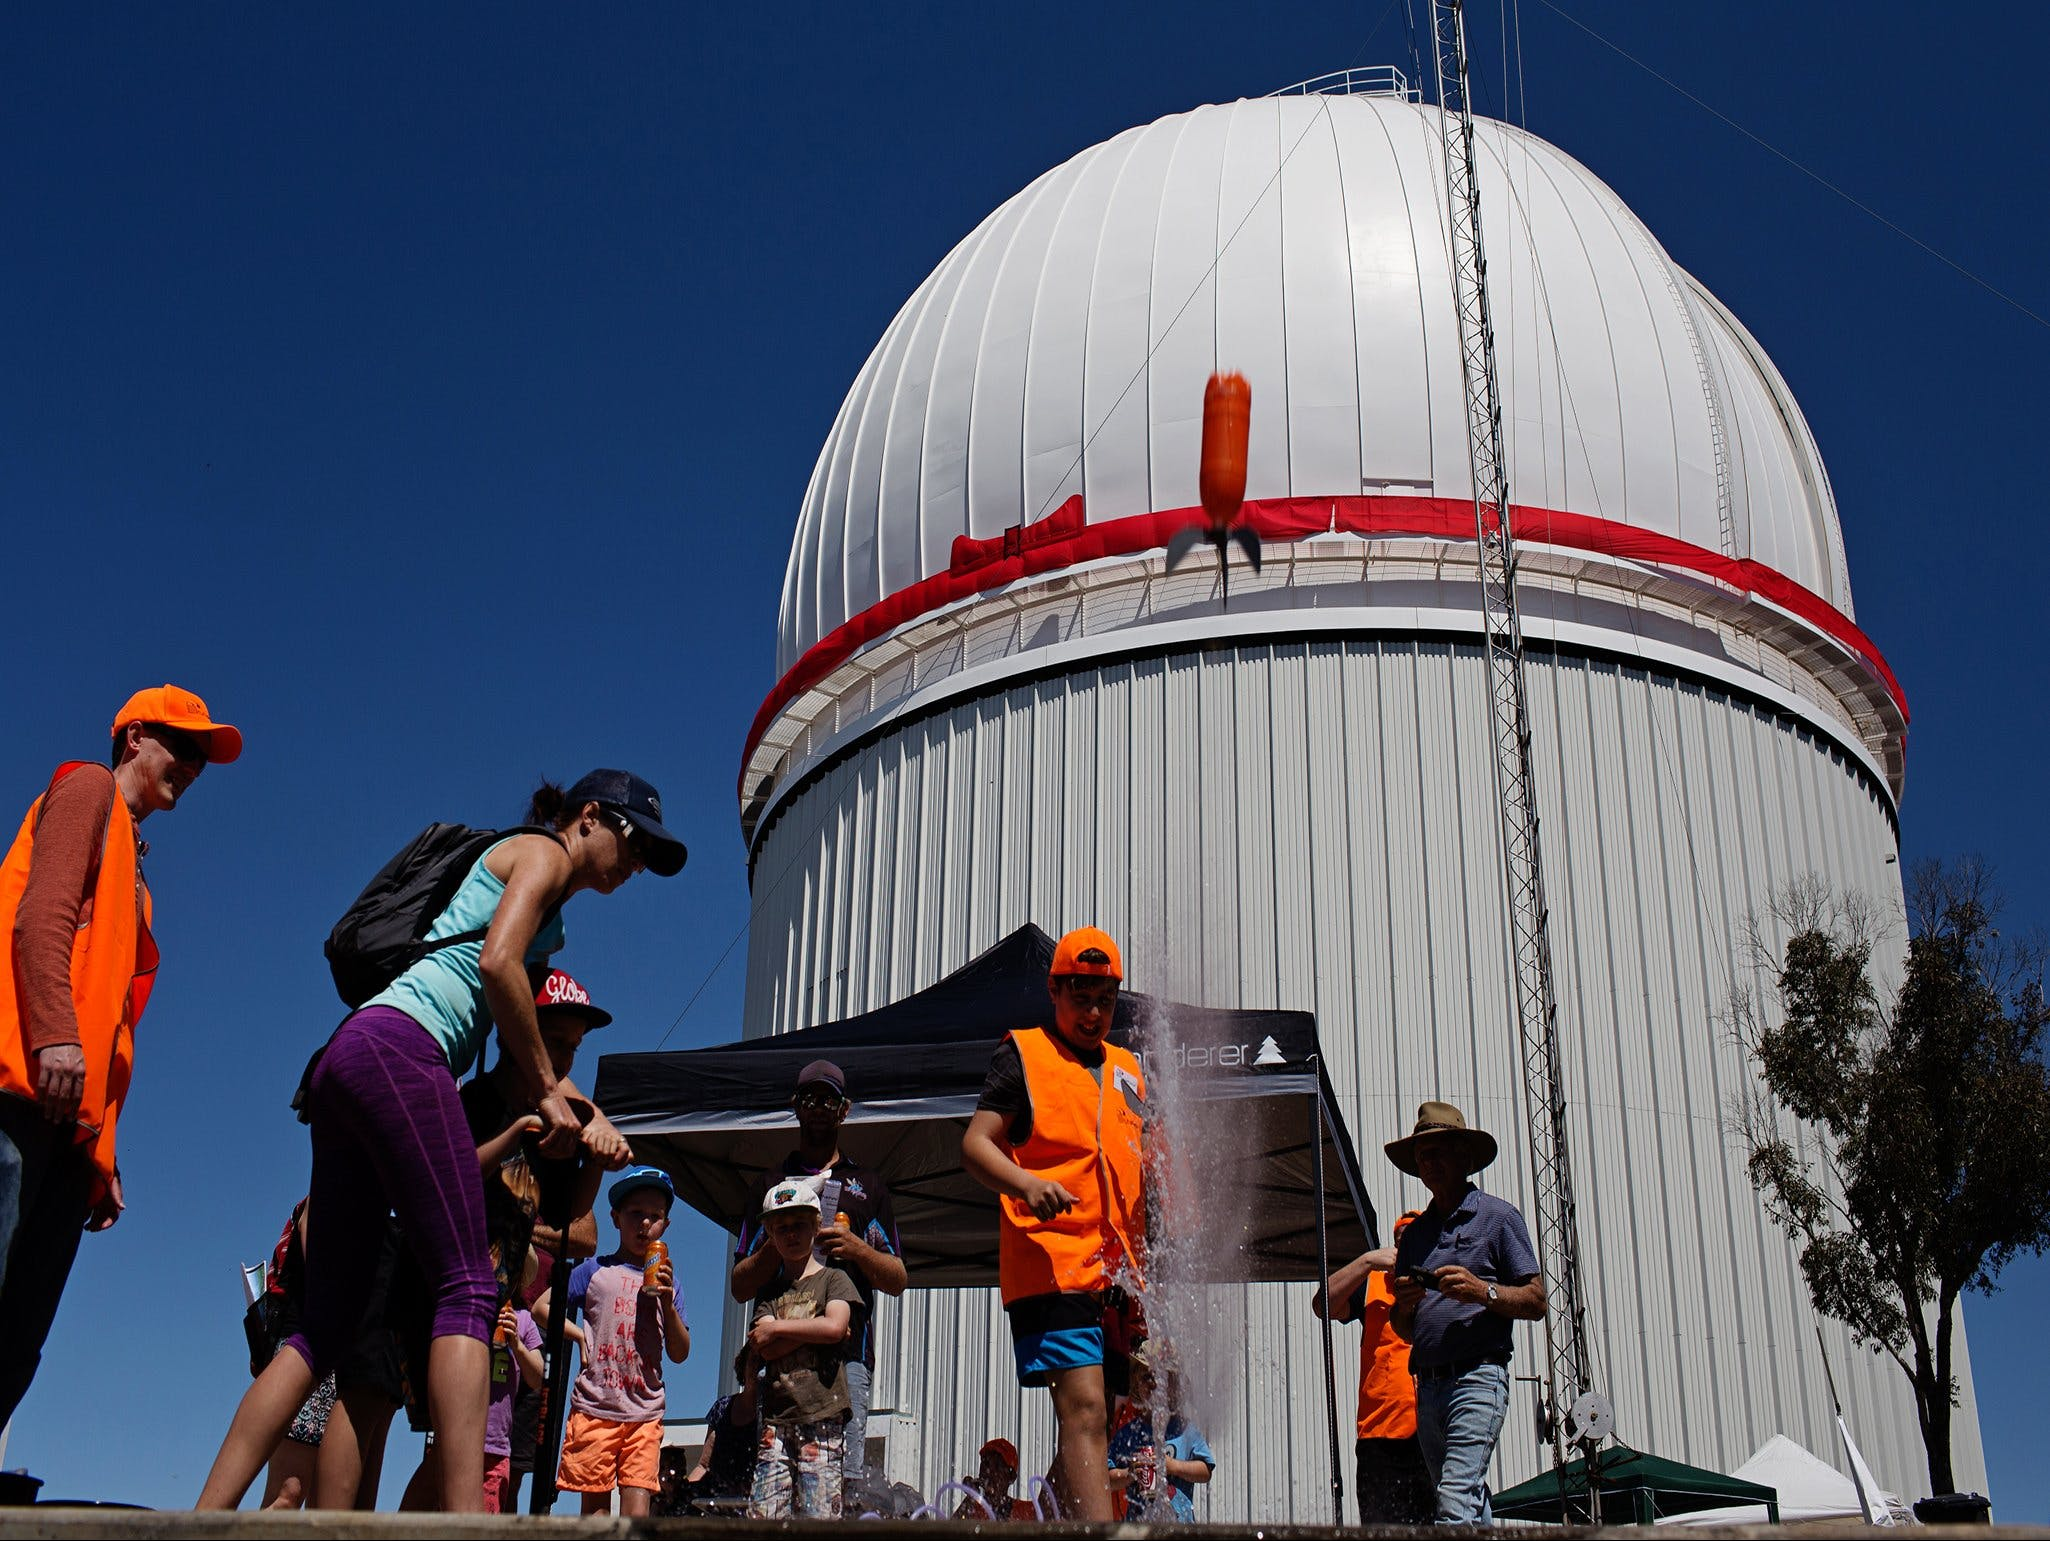 Siding Spring Observatory Open Day - Cancelled due to COVID 19 - Accommodation Sydney